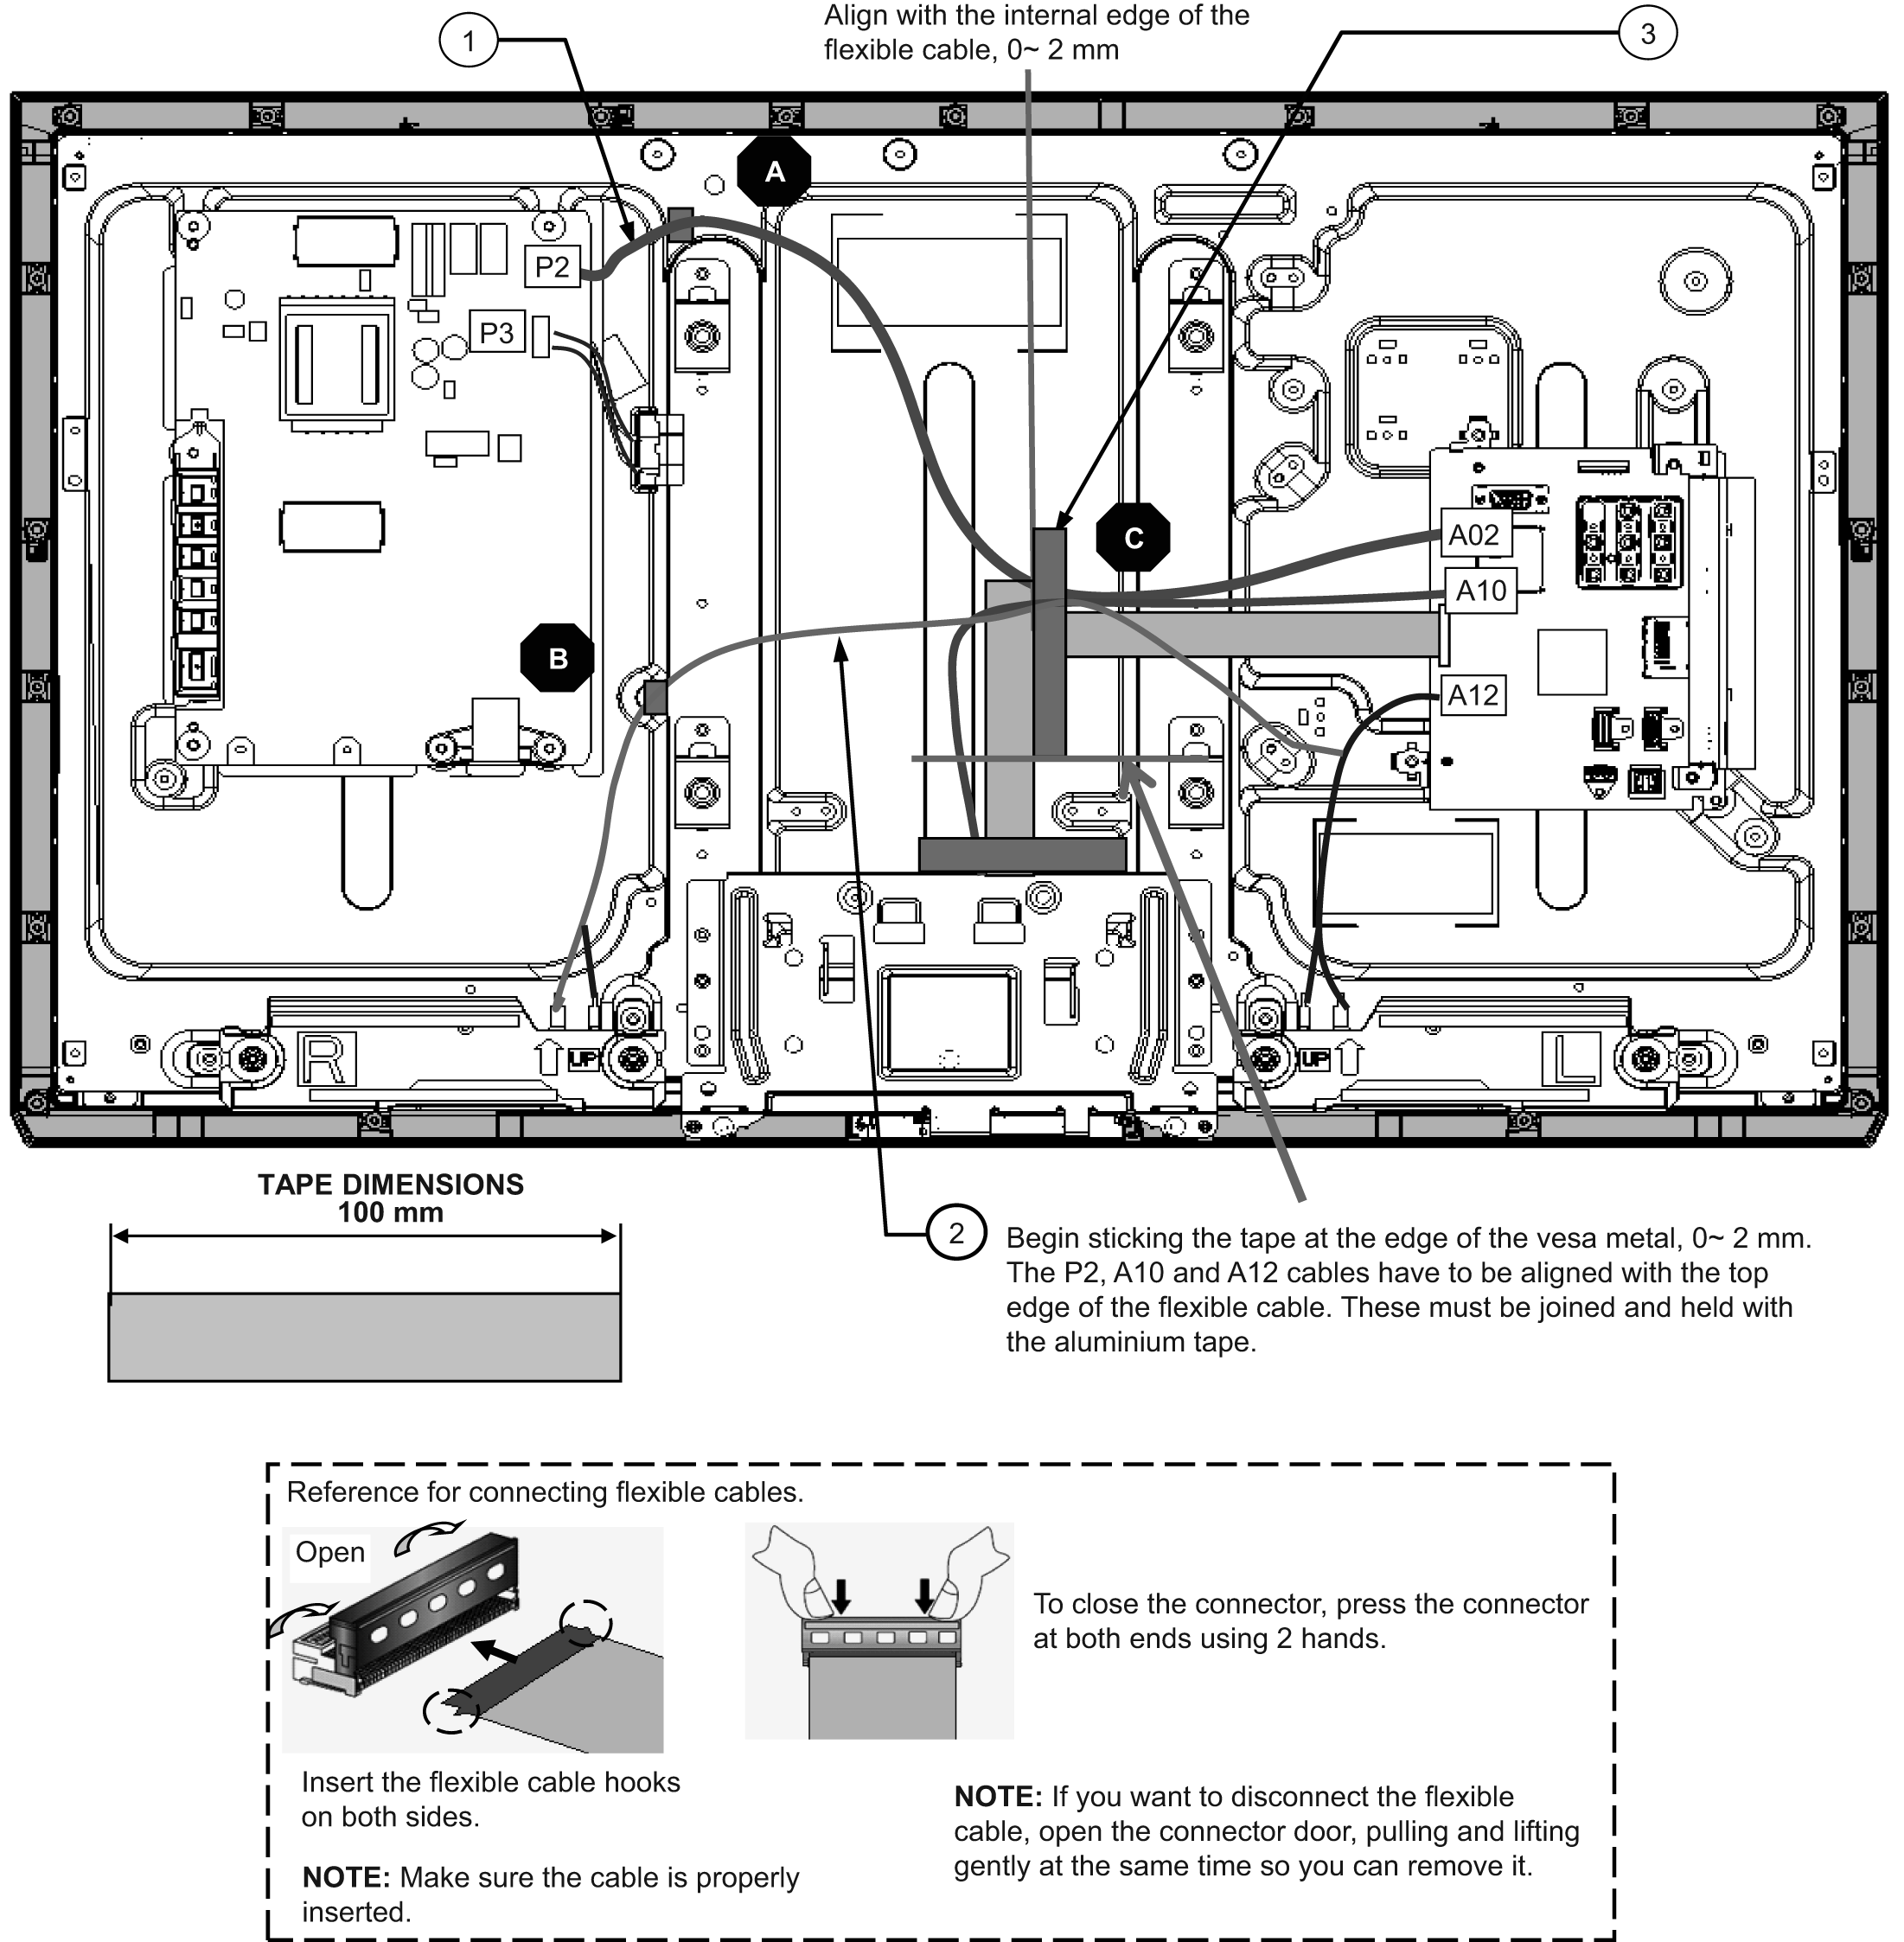 Table Of Contents Lcd Tv Model No Tc L32x5 Chassis Km15 Schematic Diagram Analog Multimeter Philips Diagrams 72 Cable Alignment Connect The That Comes On Panel To P3